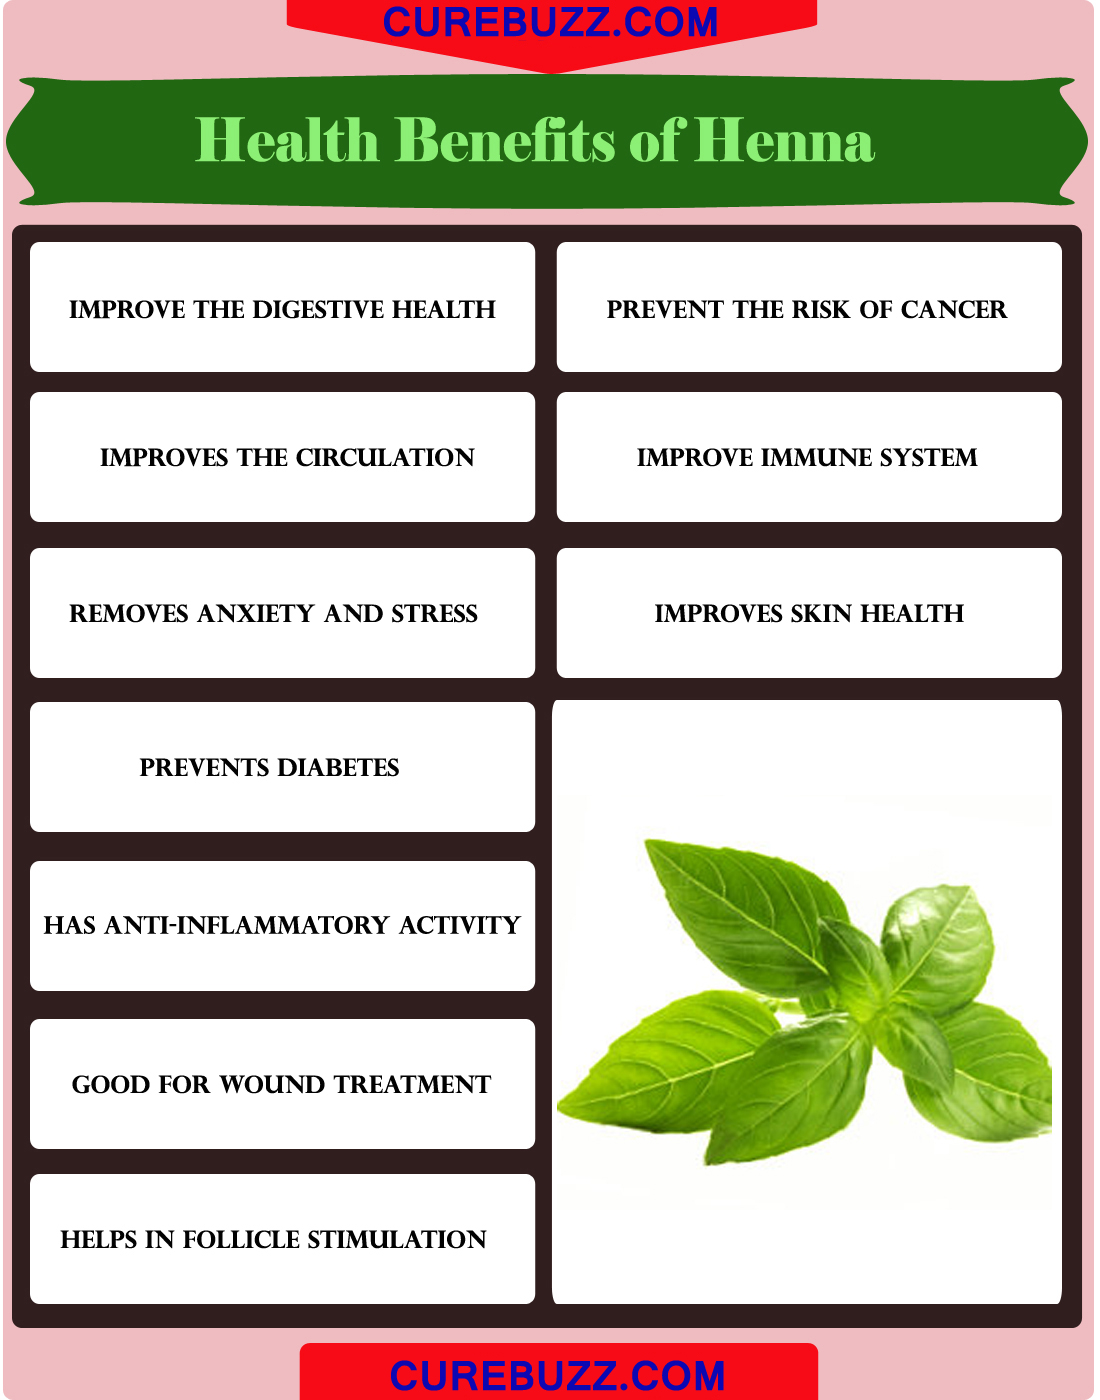 Health Benefits of Henna